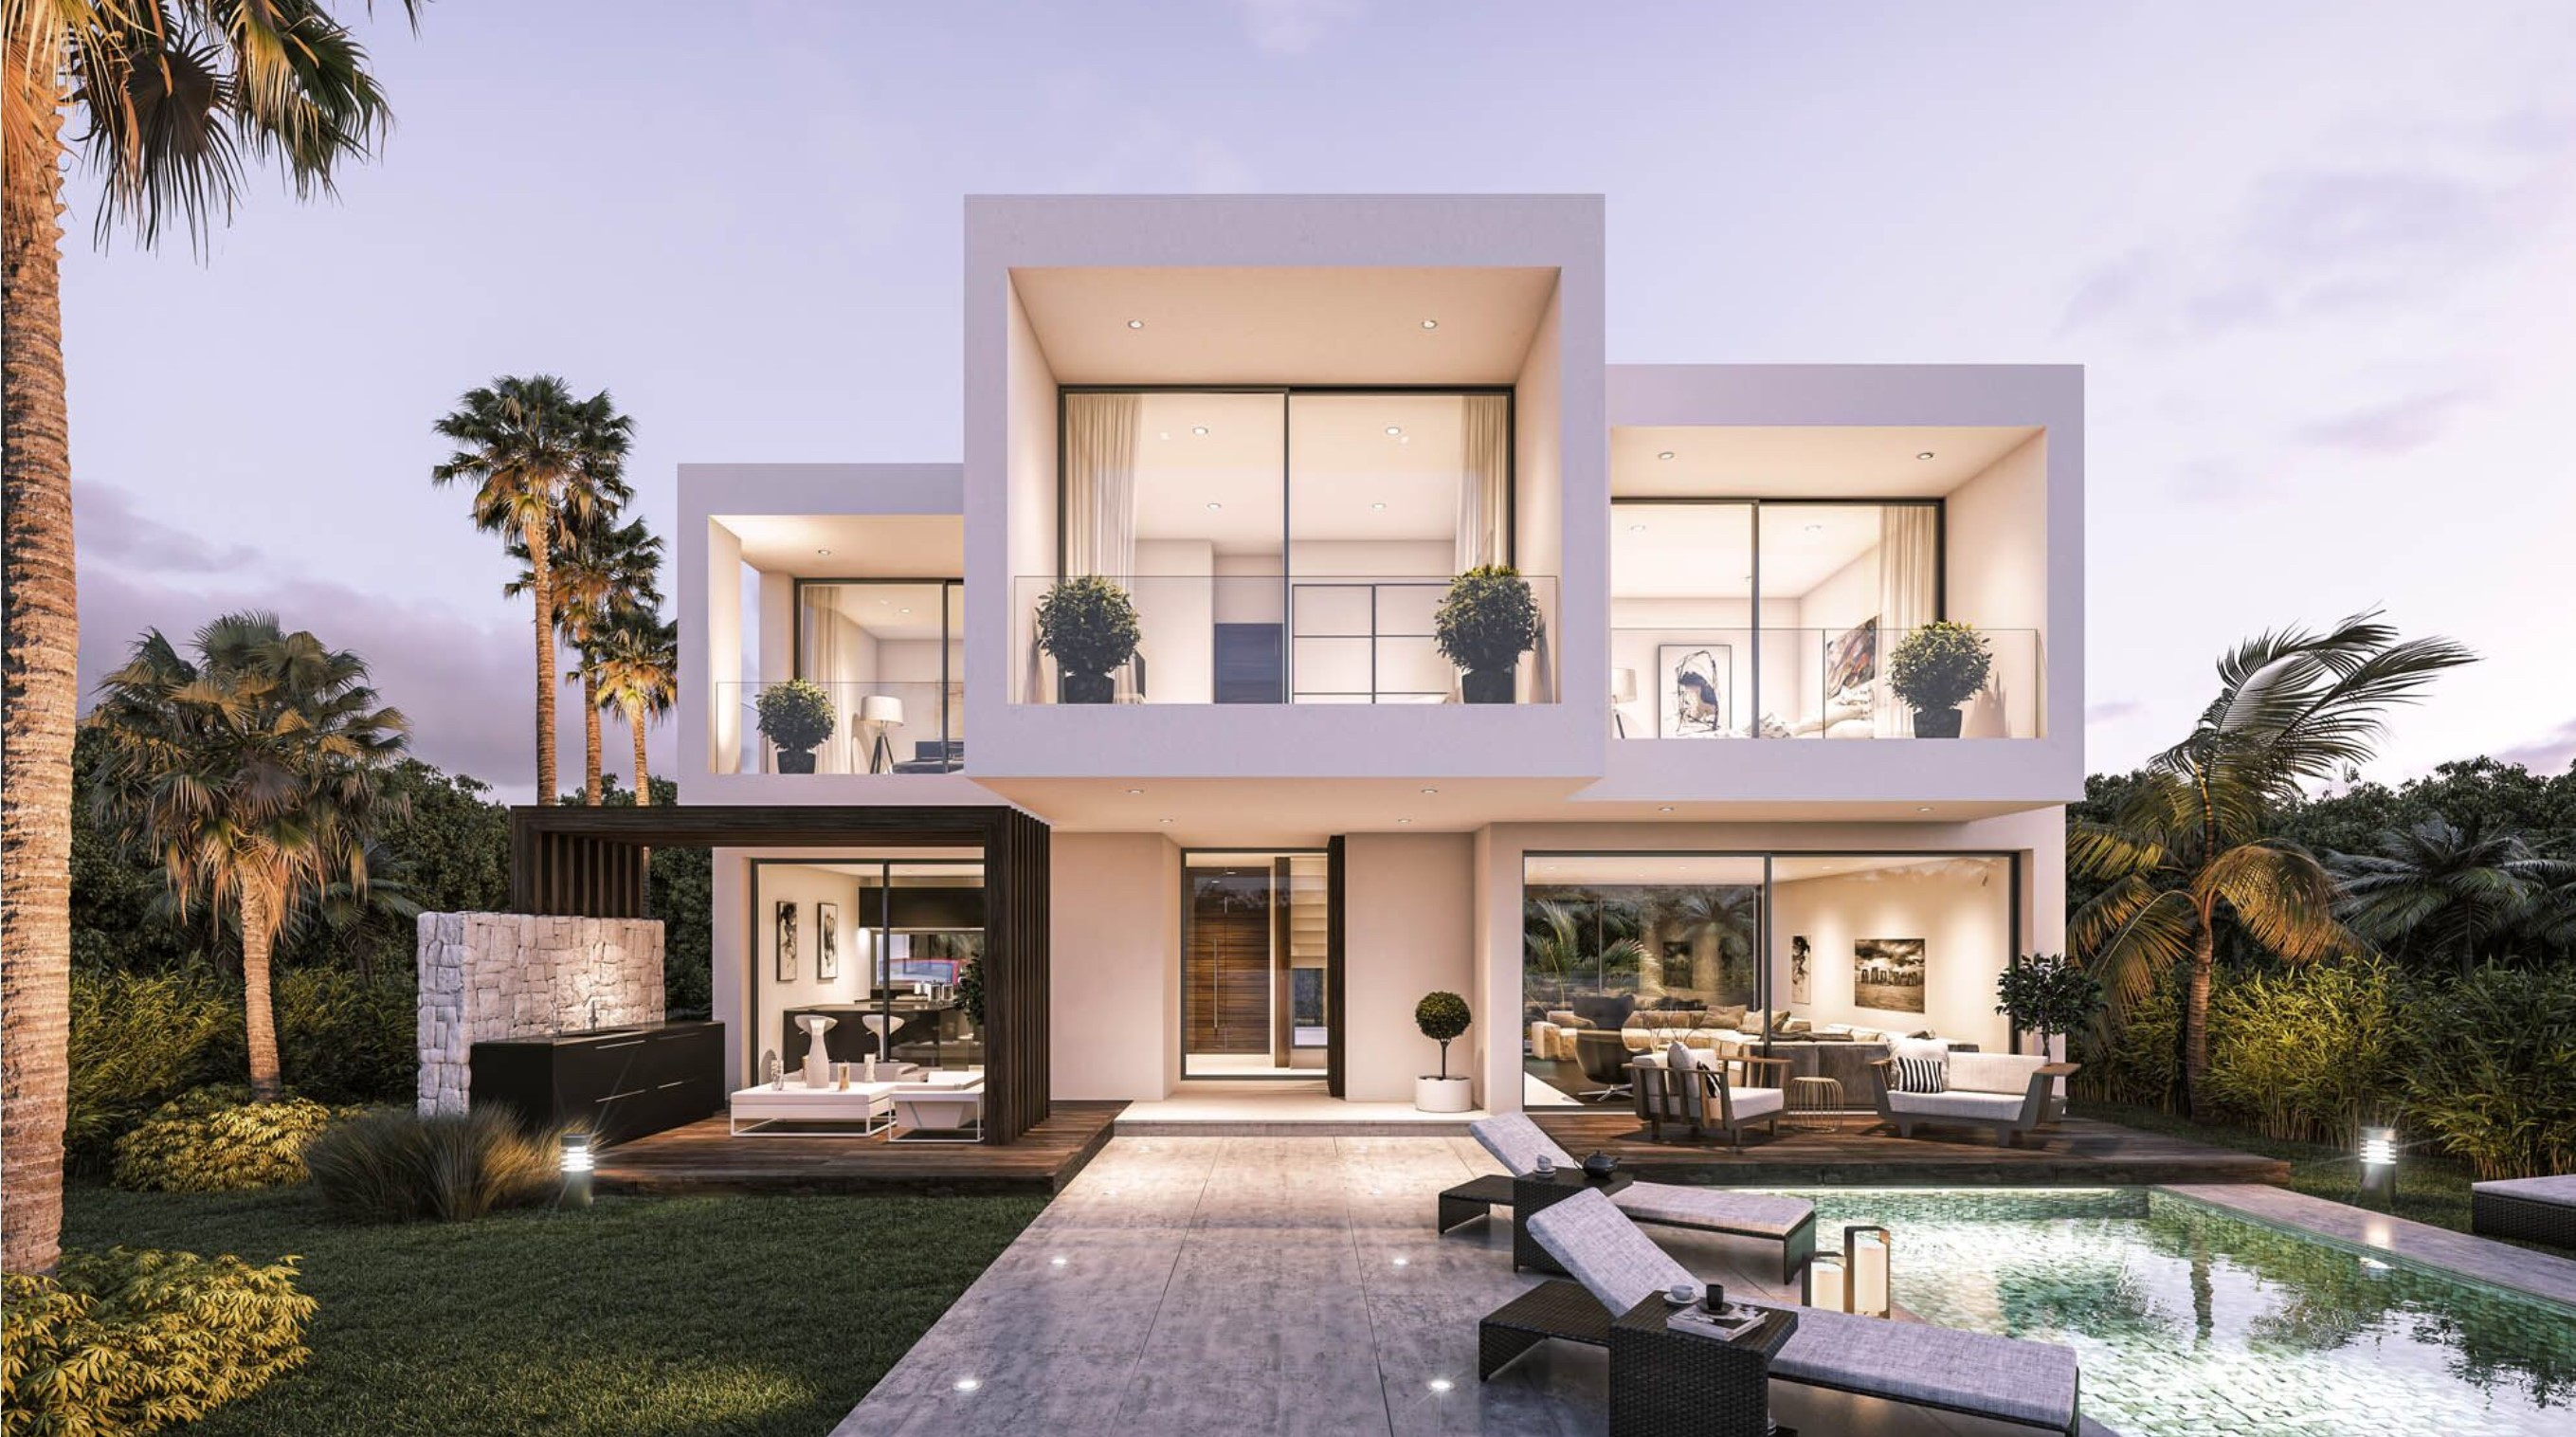 ICONIC MODERN VILLAS A 200m FROM THE BEACH ESTEPONA